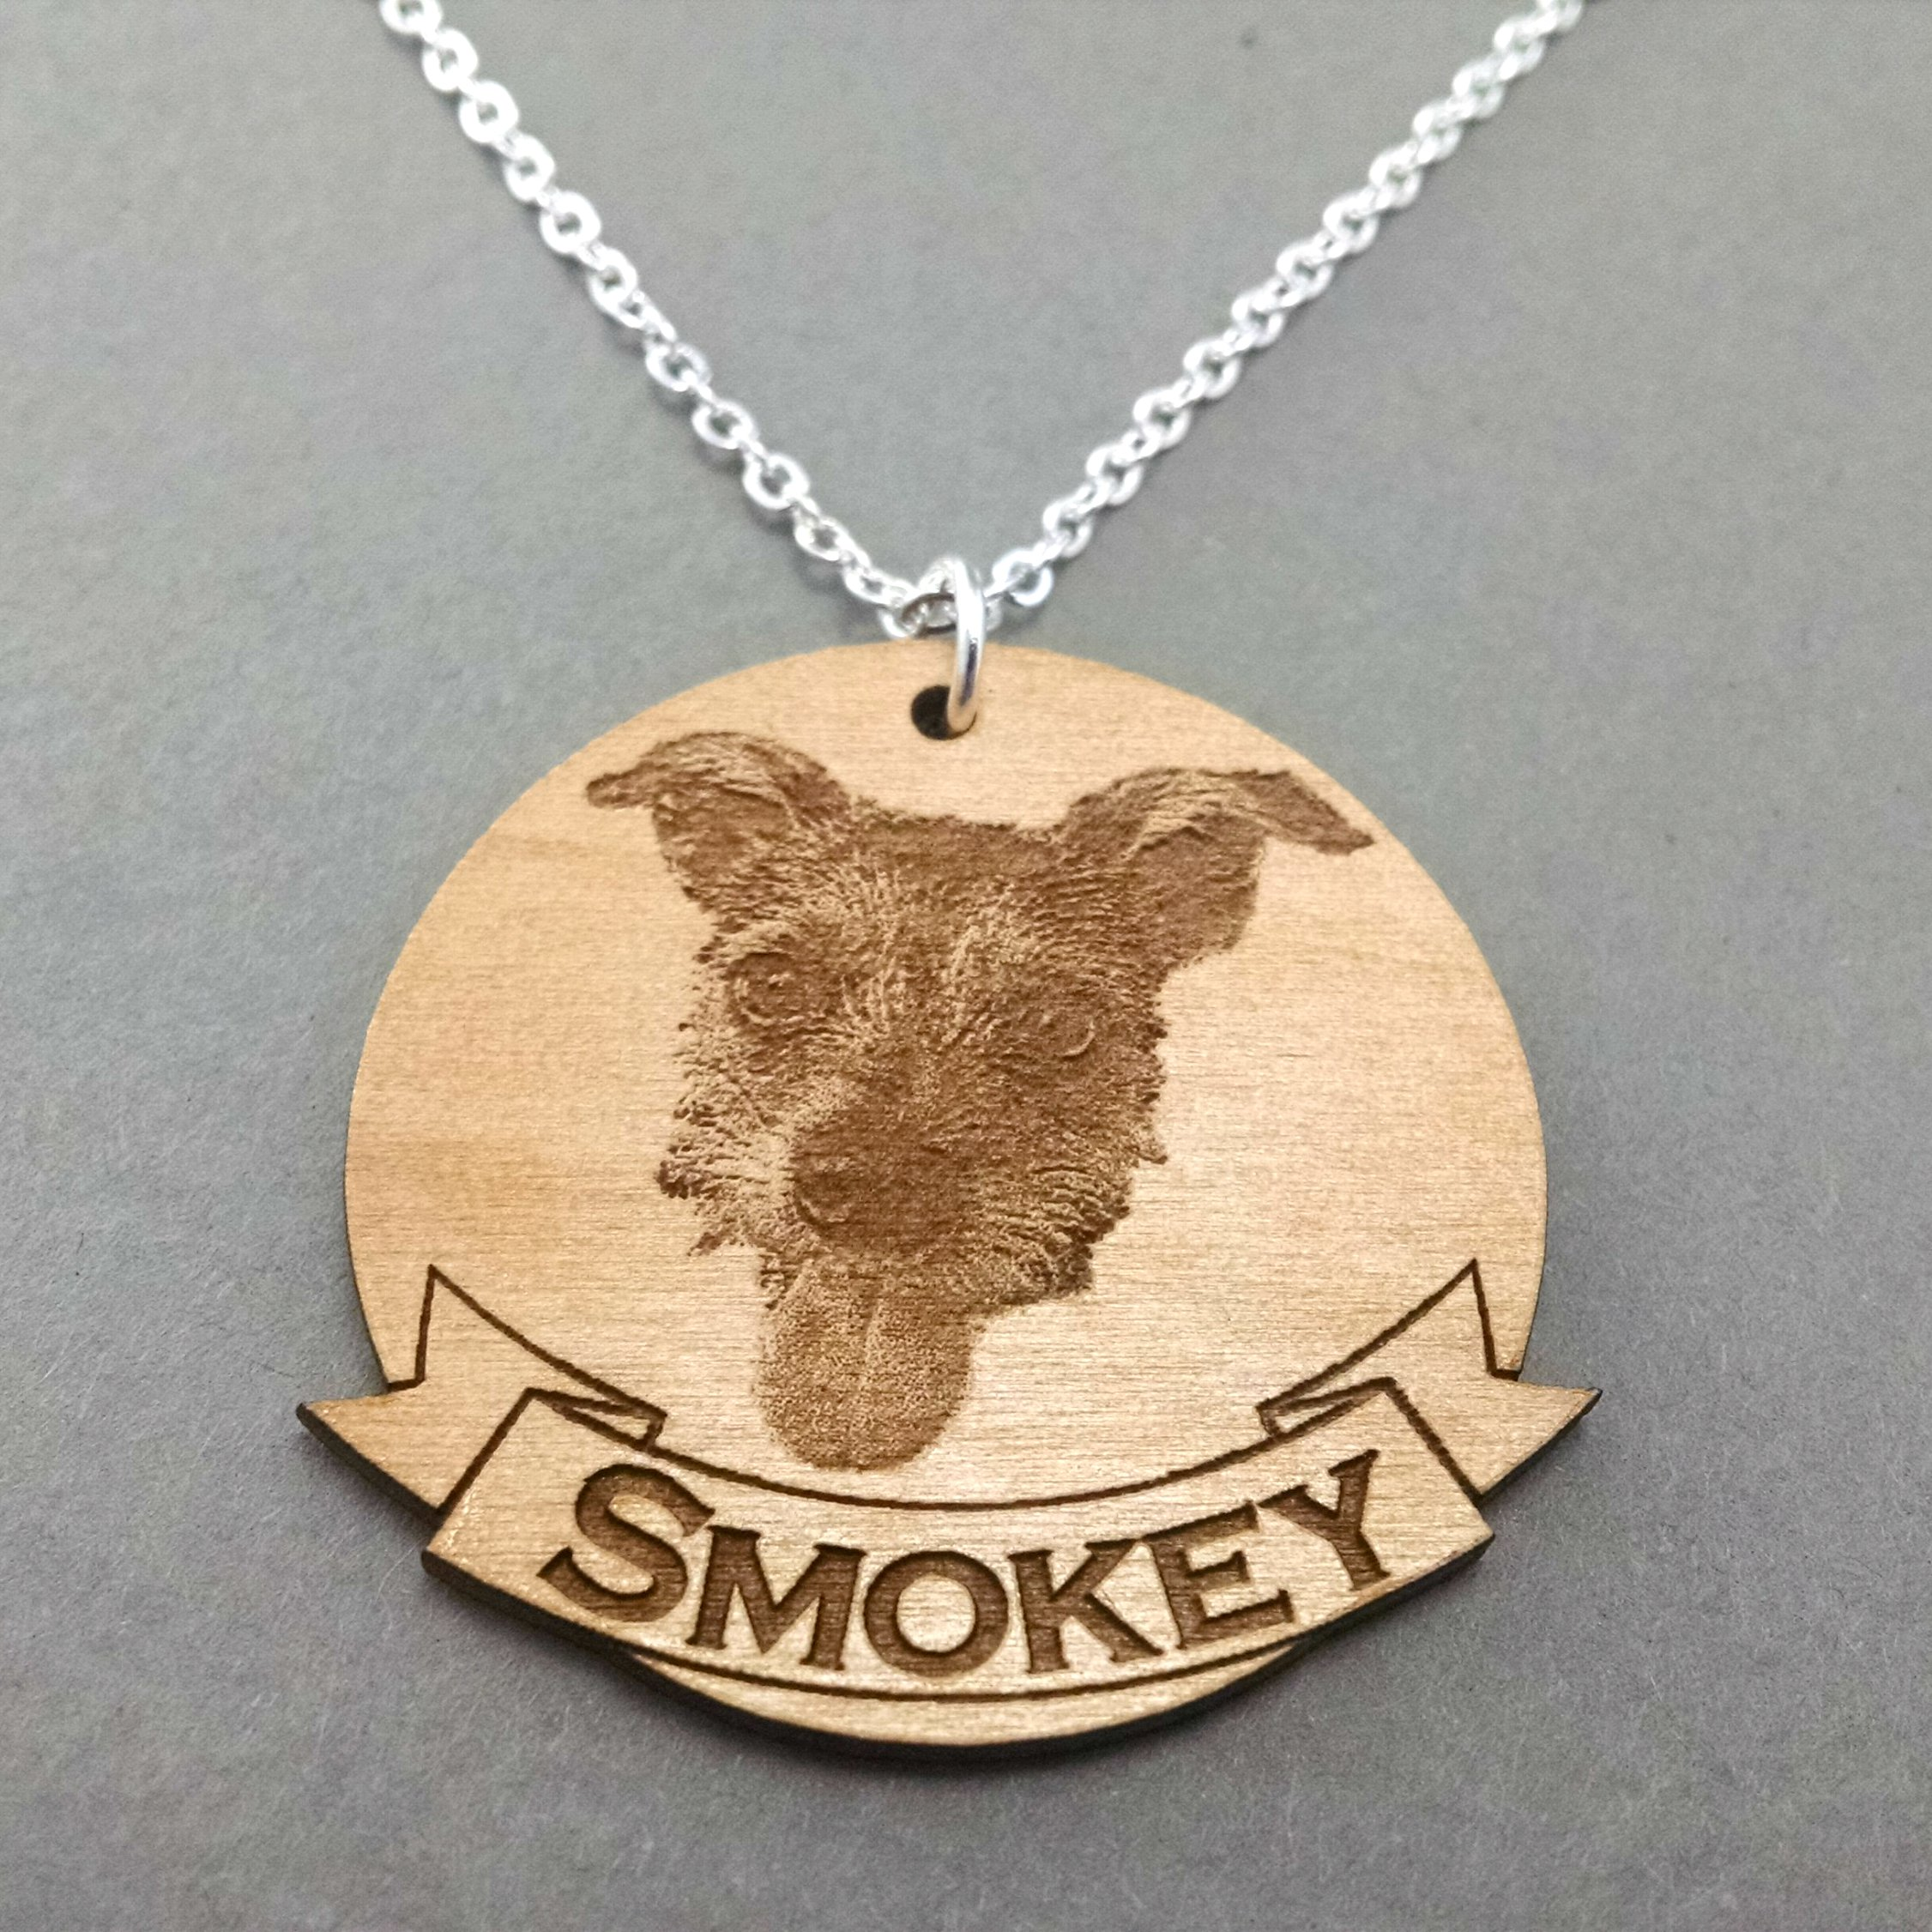 Custom Pet Necklace - Smokey.jpg